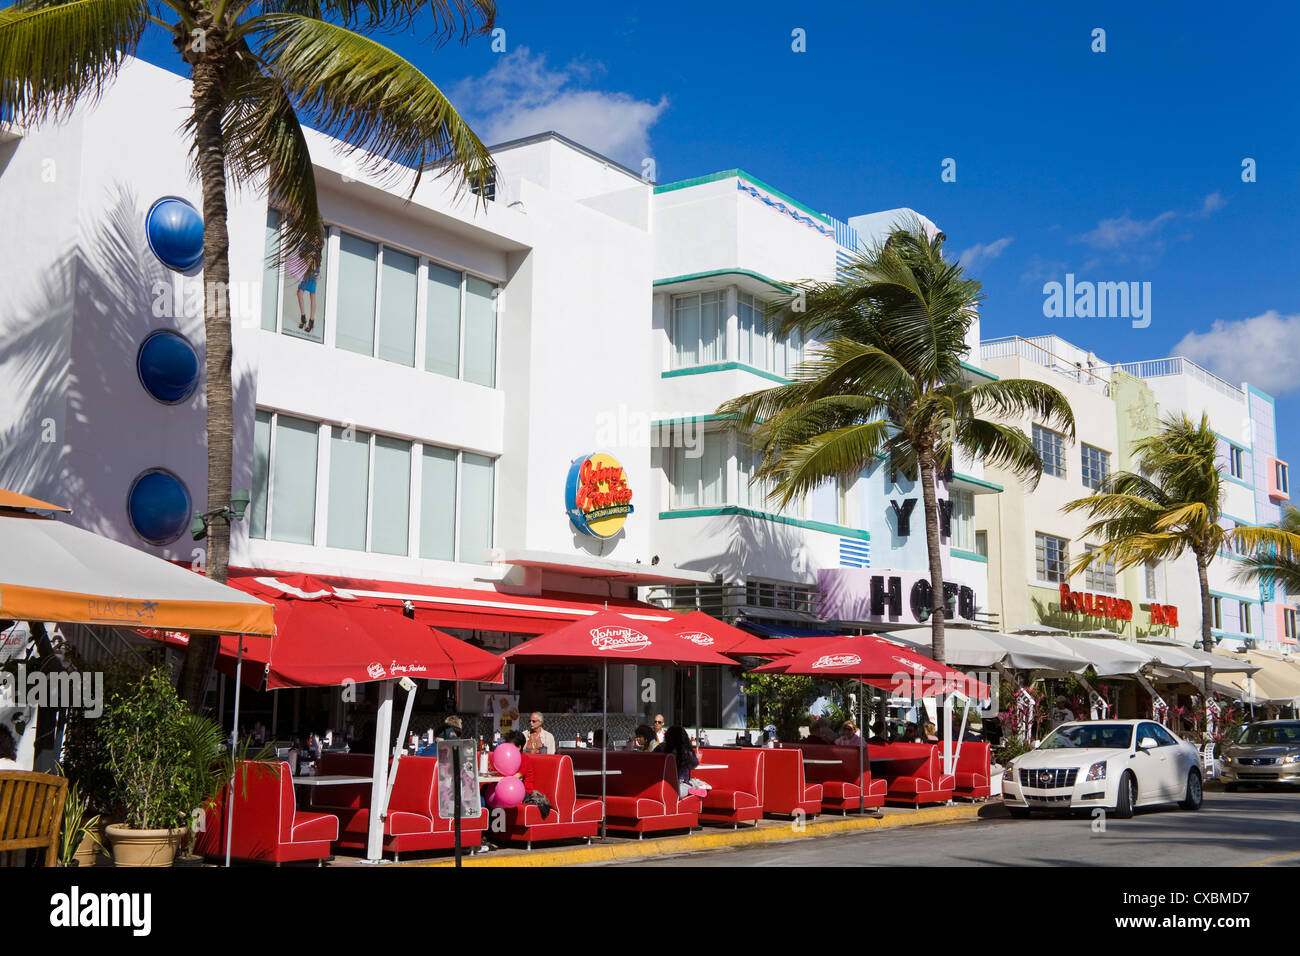 Johnny Rockets restaurant in South Beach, City of Miami Beach, Florida, United States of America, North America Stock Photo